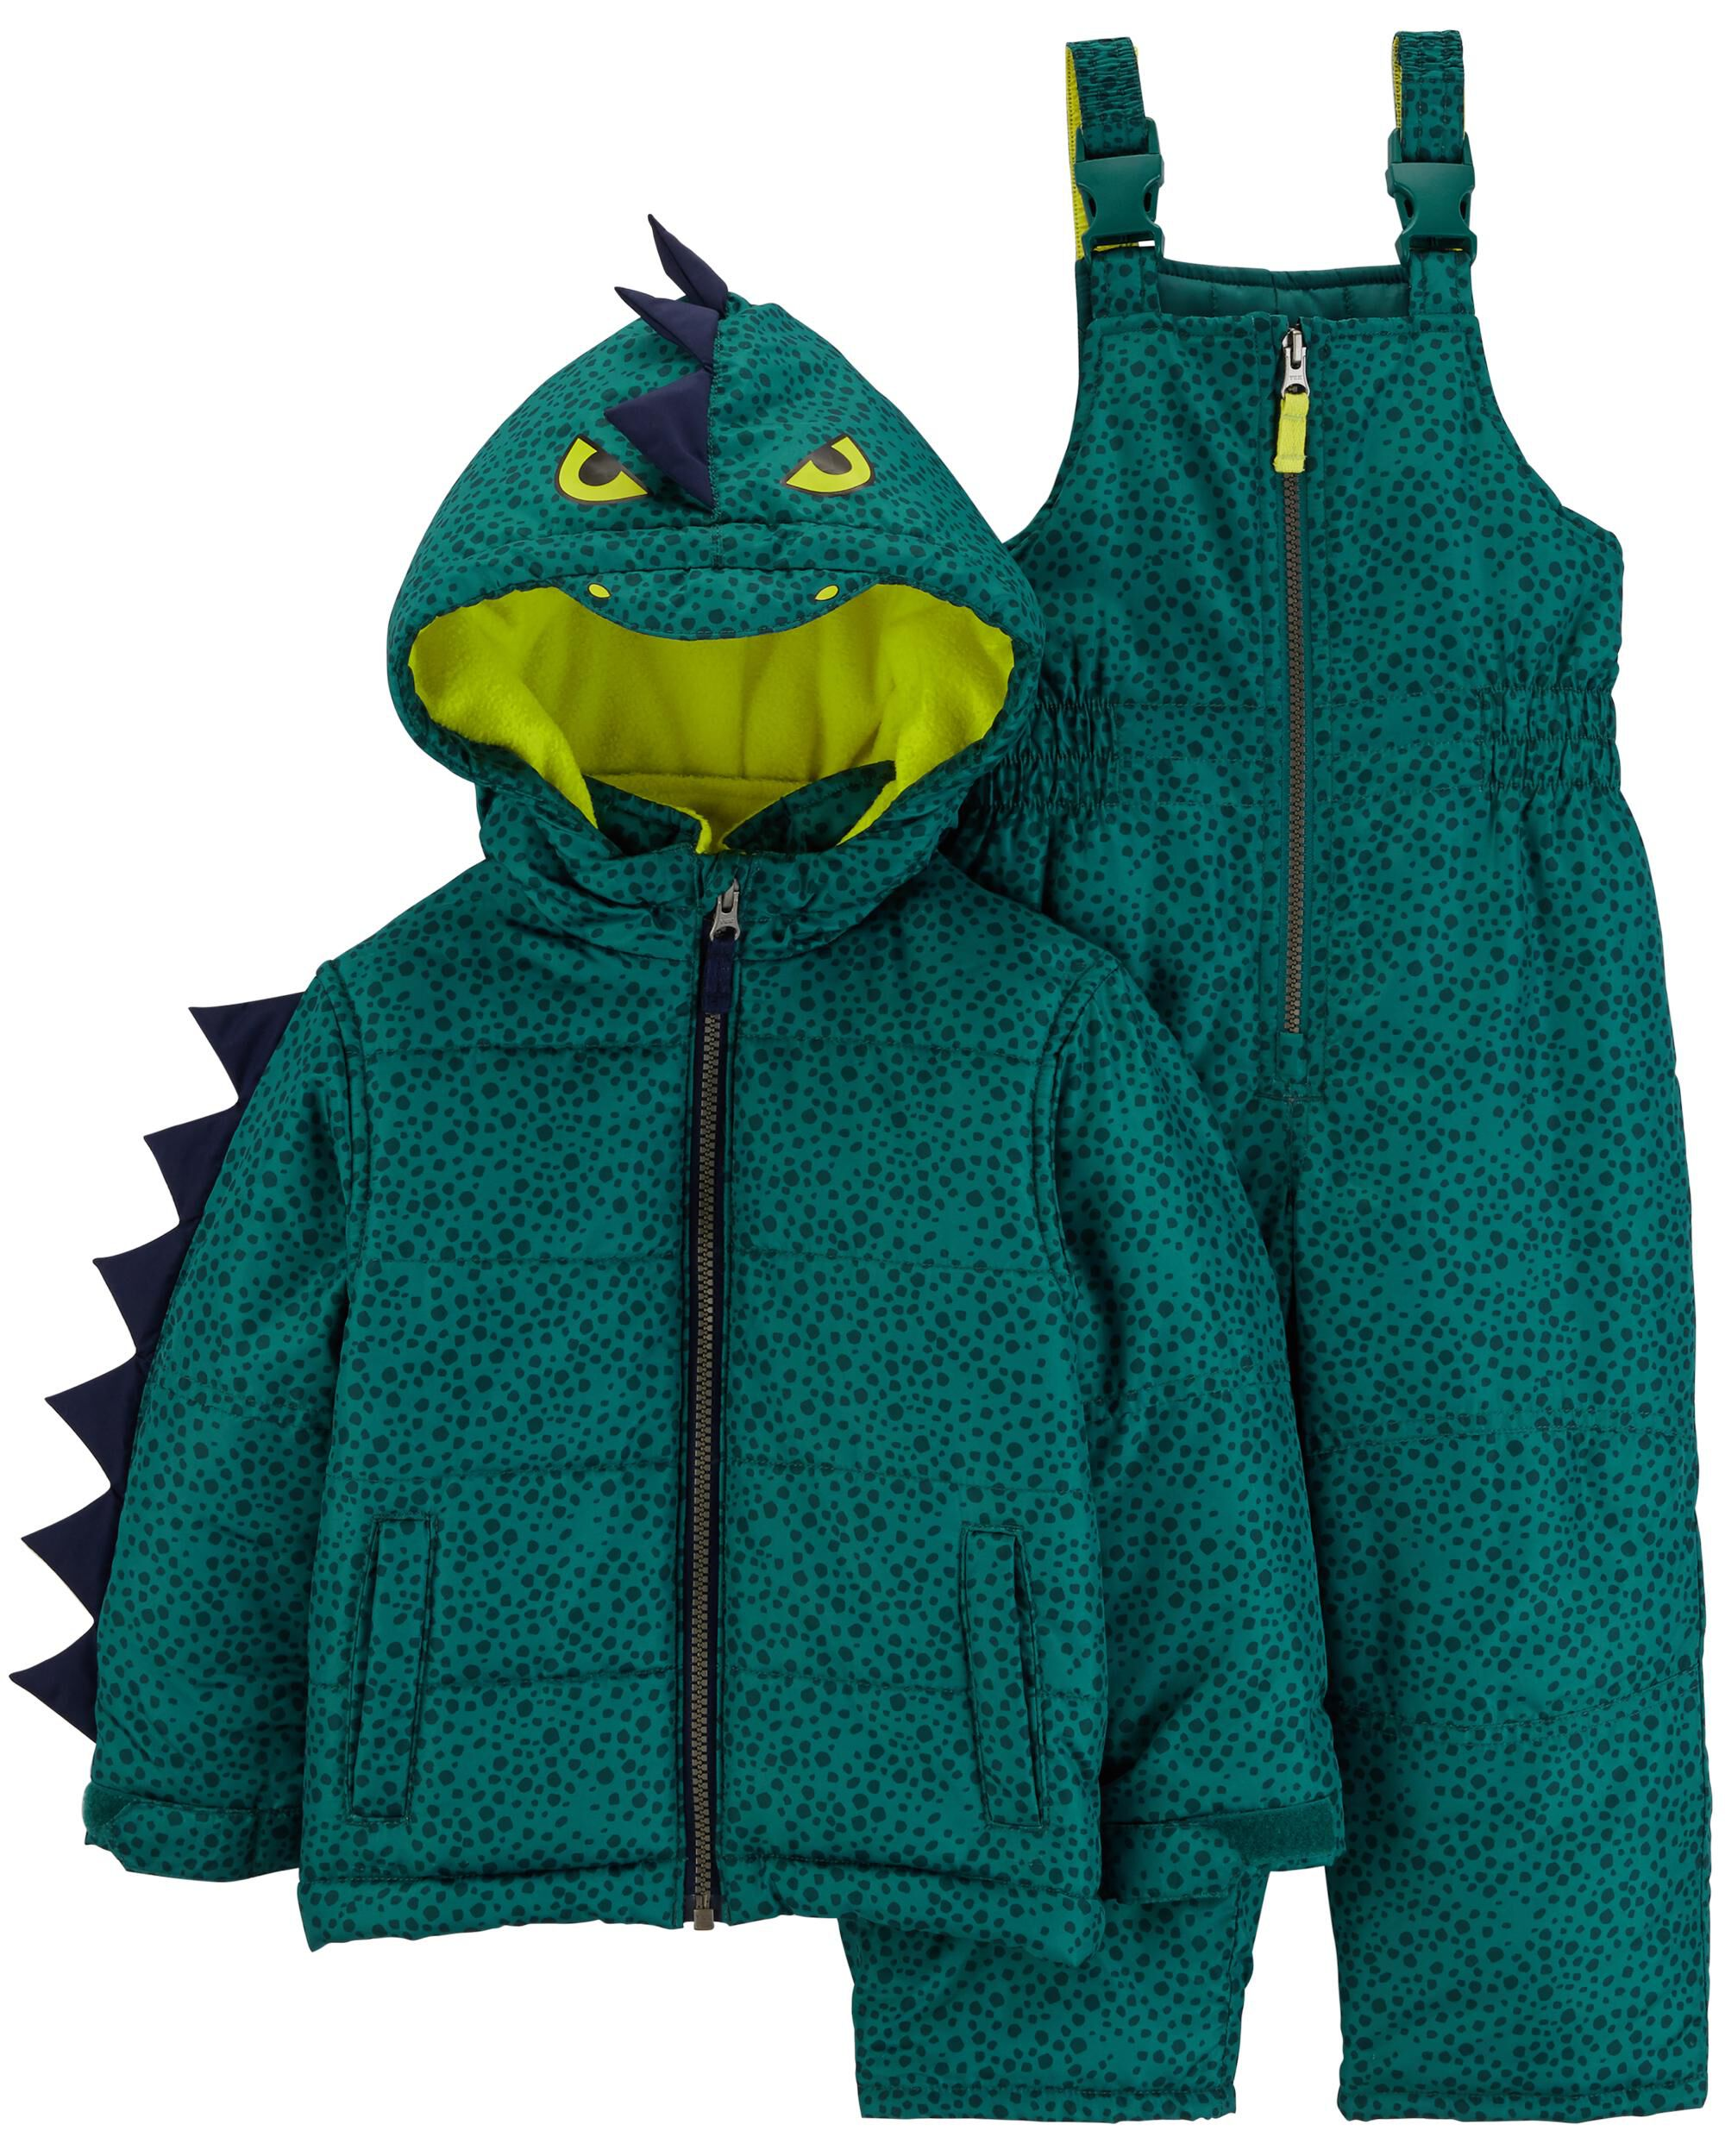 a54f42071 2-Piece Dinosaur Snowsuit Set